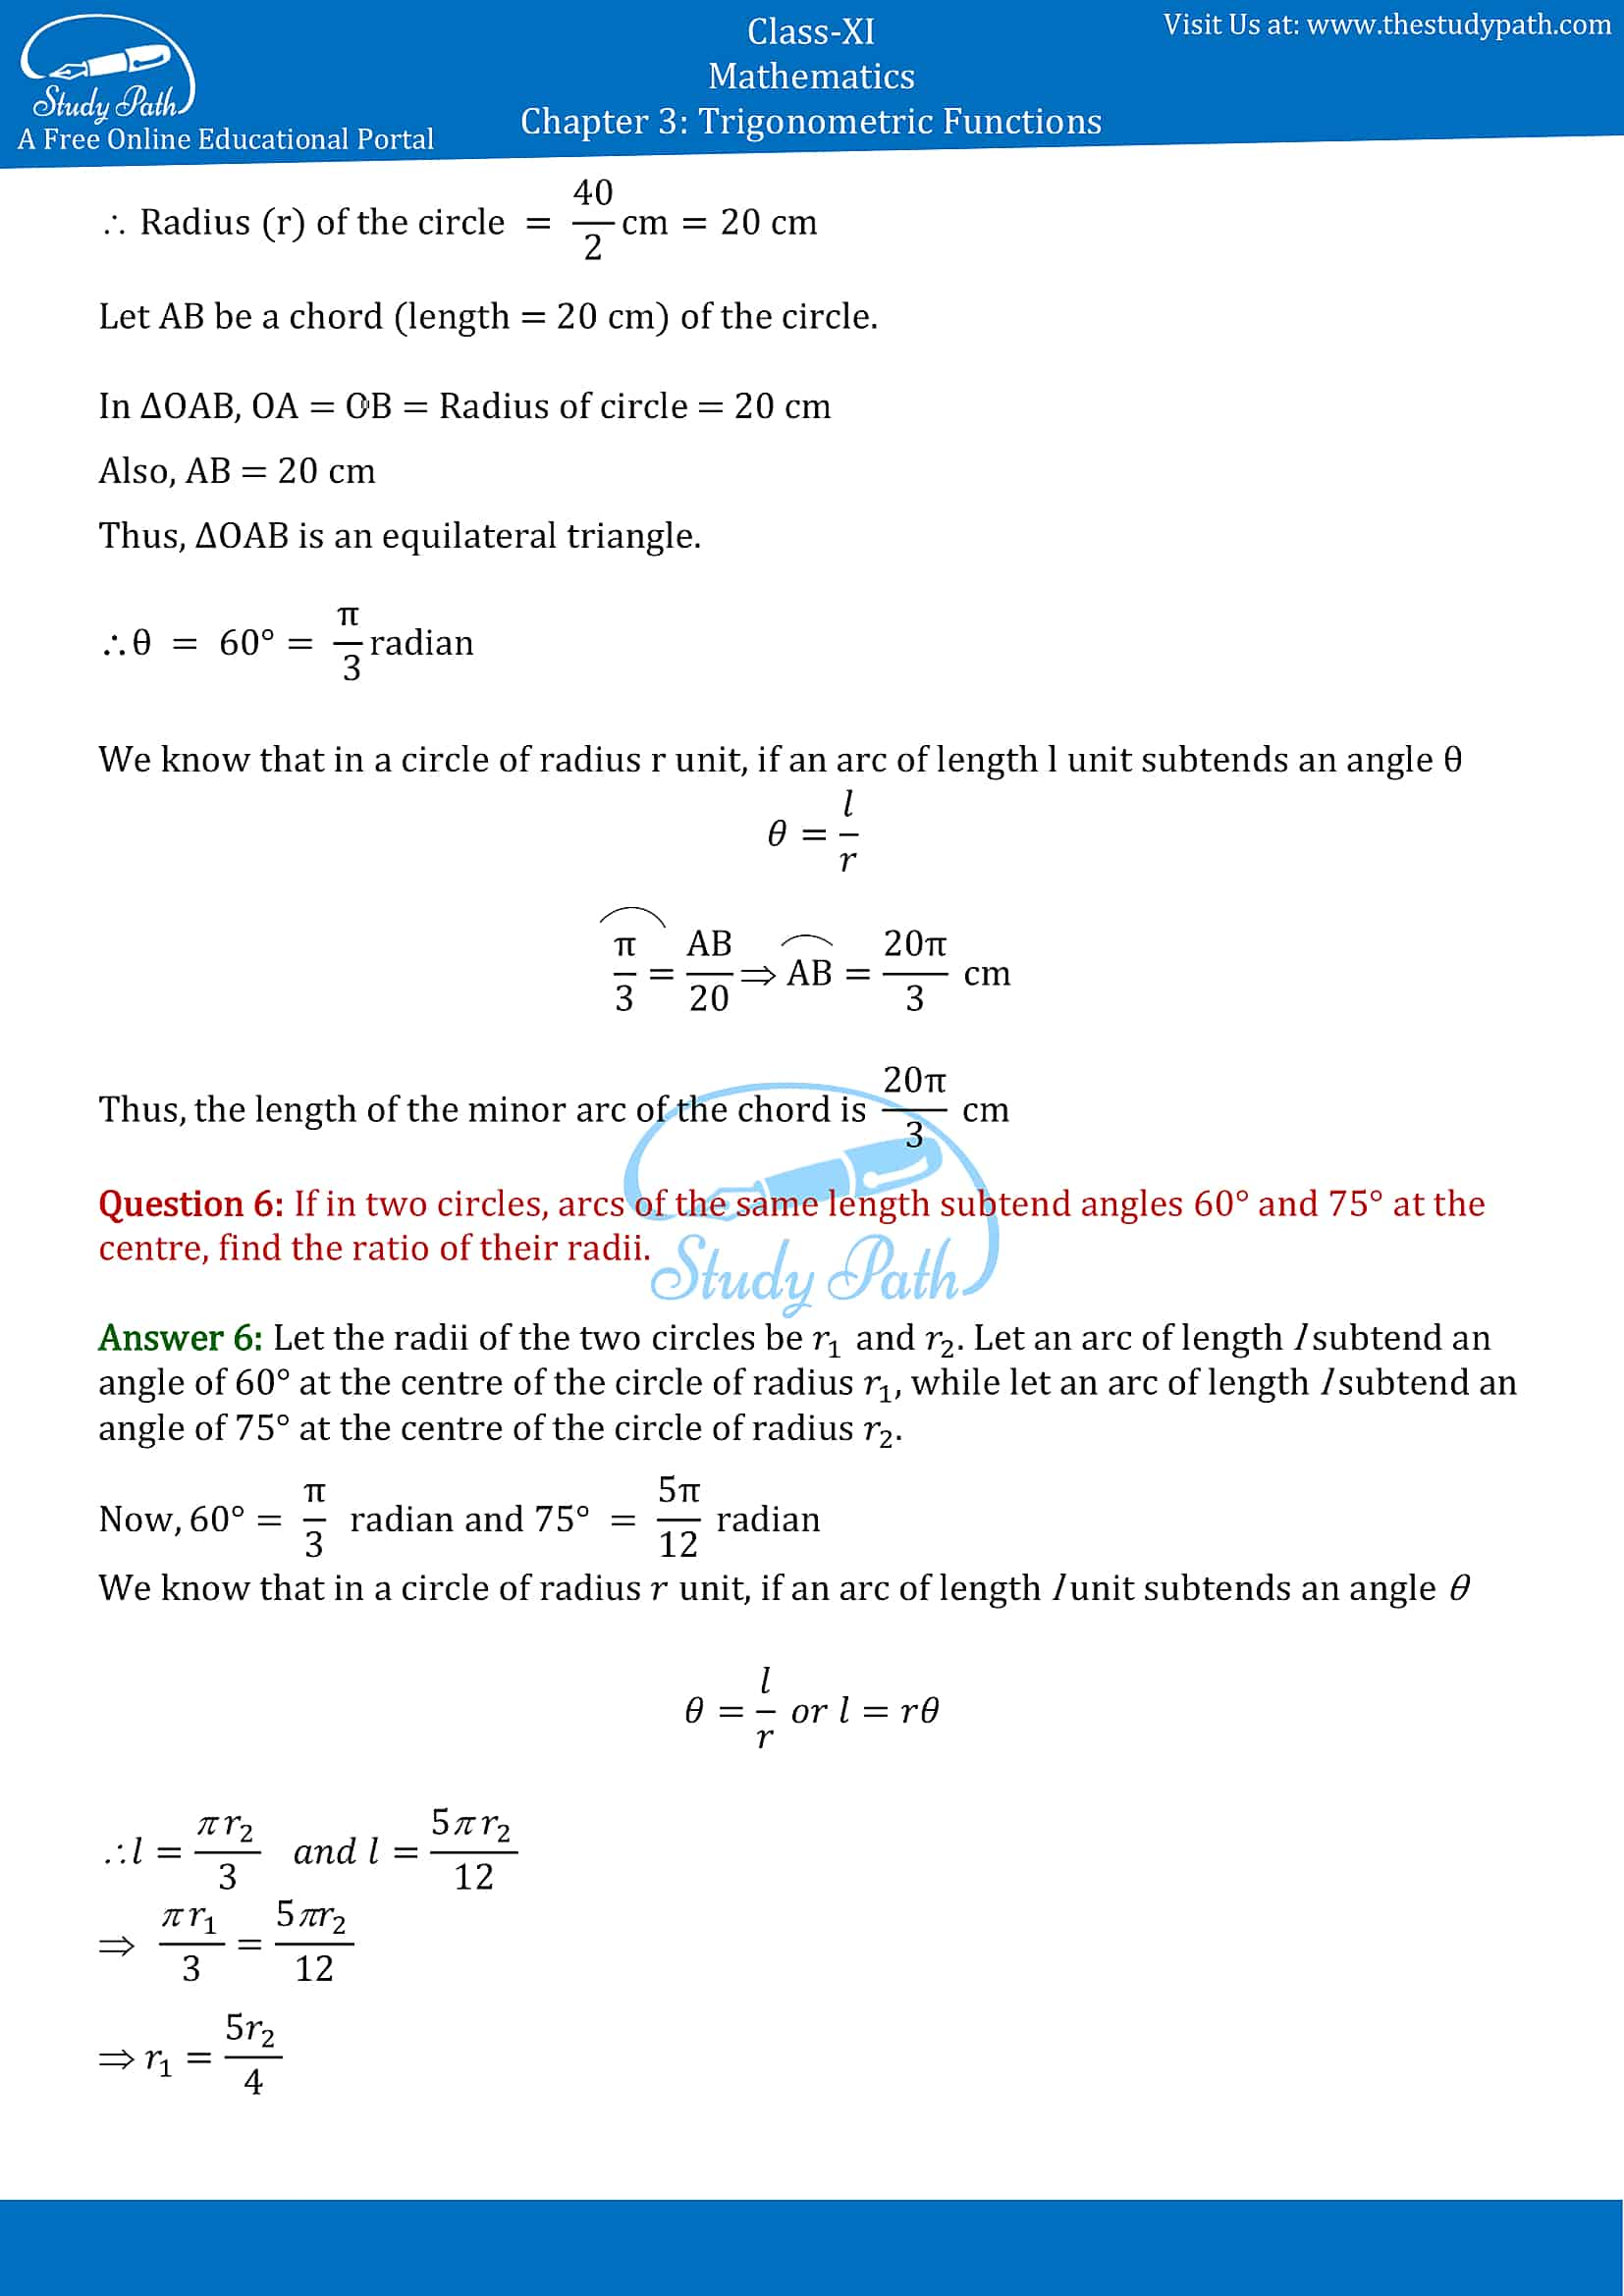 NCERT Solutions for Class 11 Maths Chapter 3 Trigonometric Functions Exercise 3.1